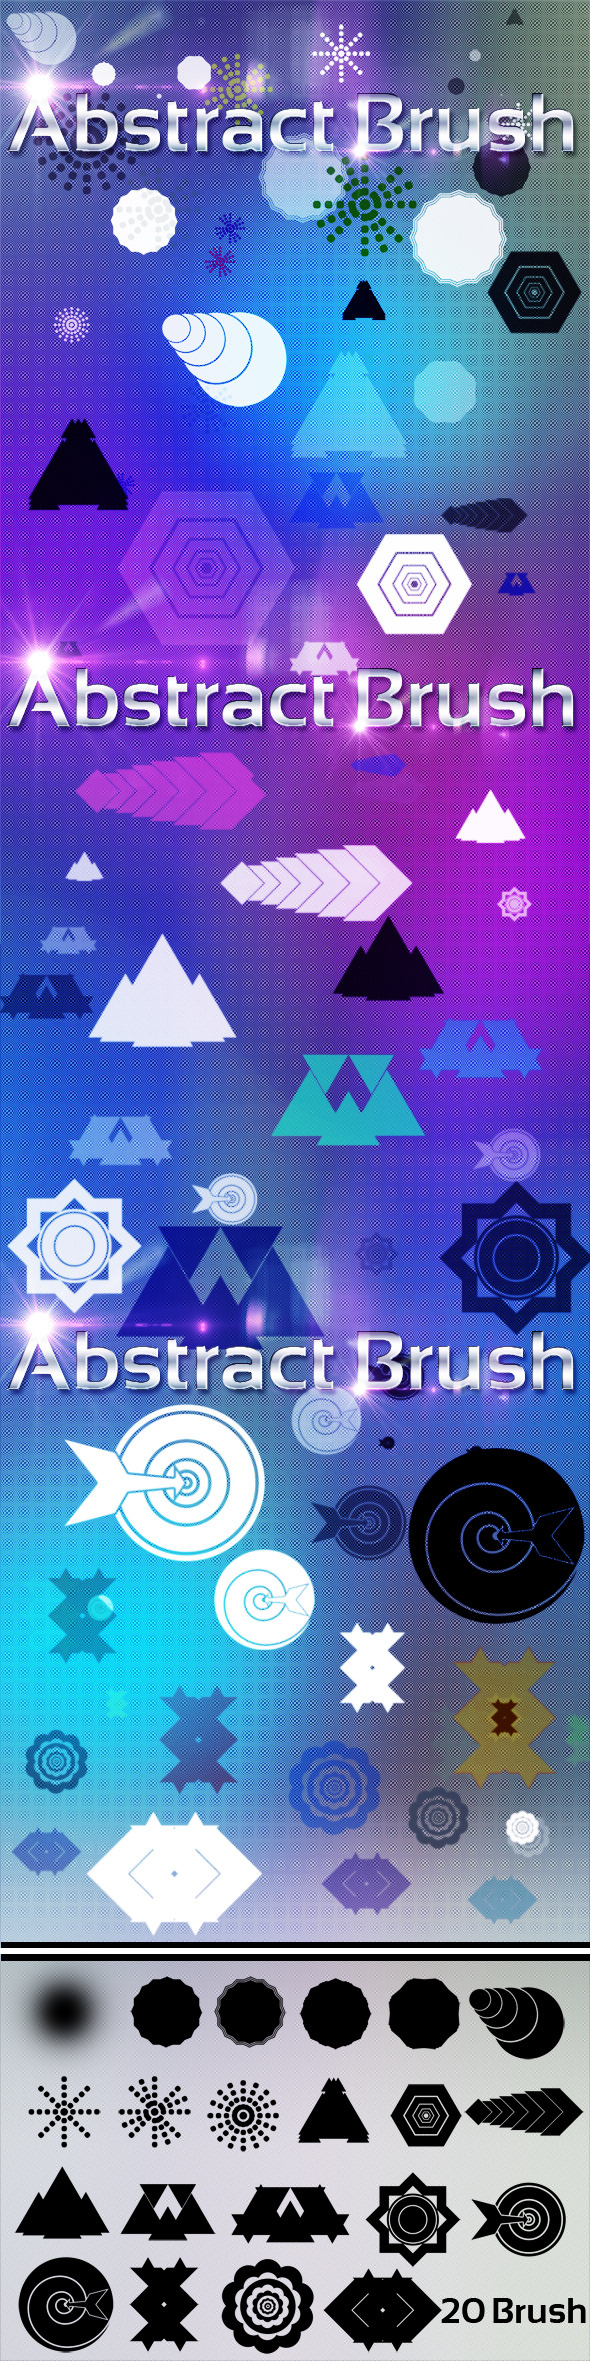 20 Abstract Brush - Brushes Photoshop